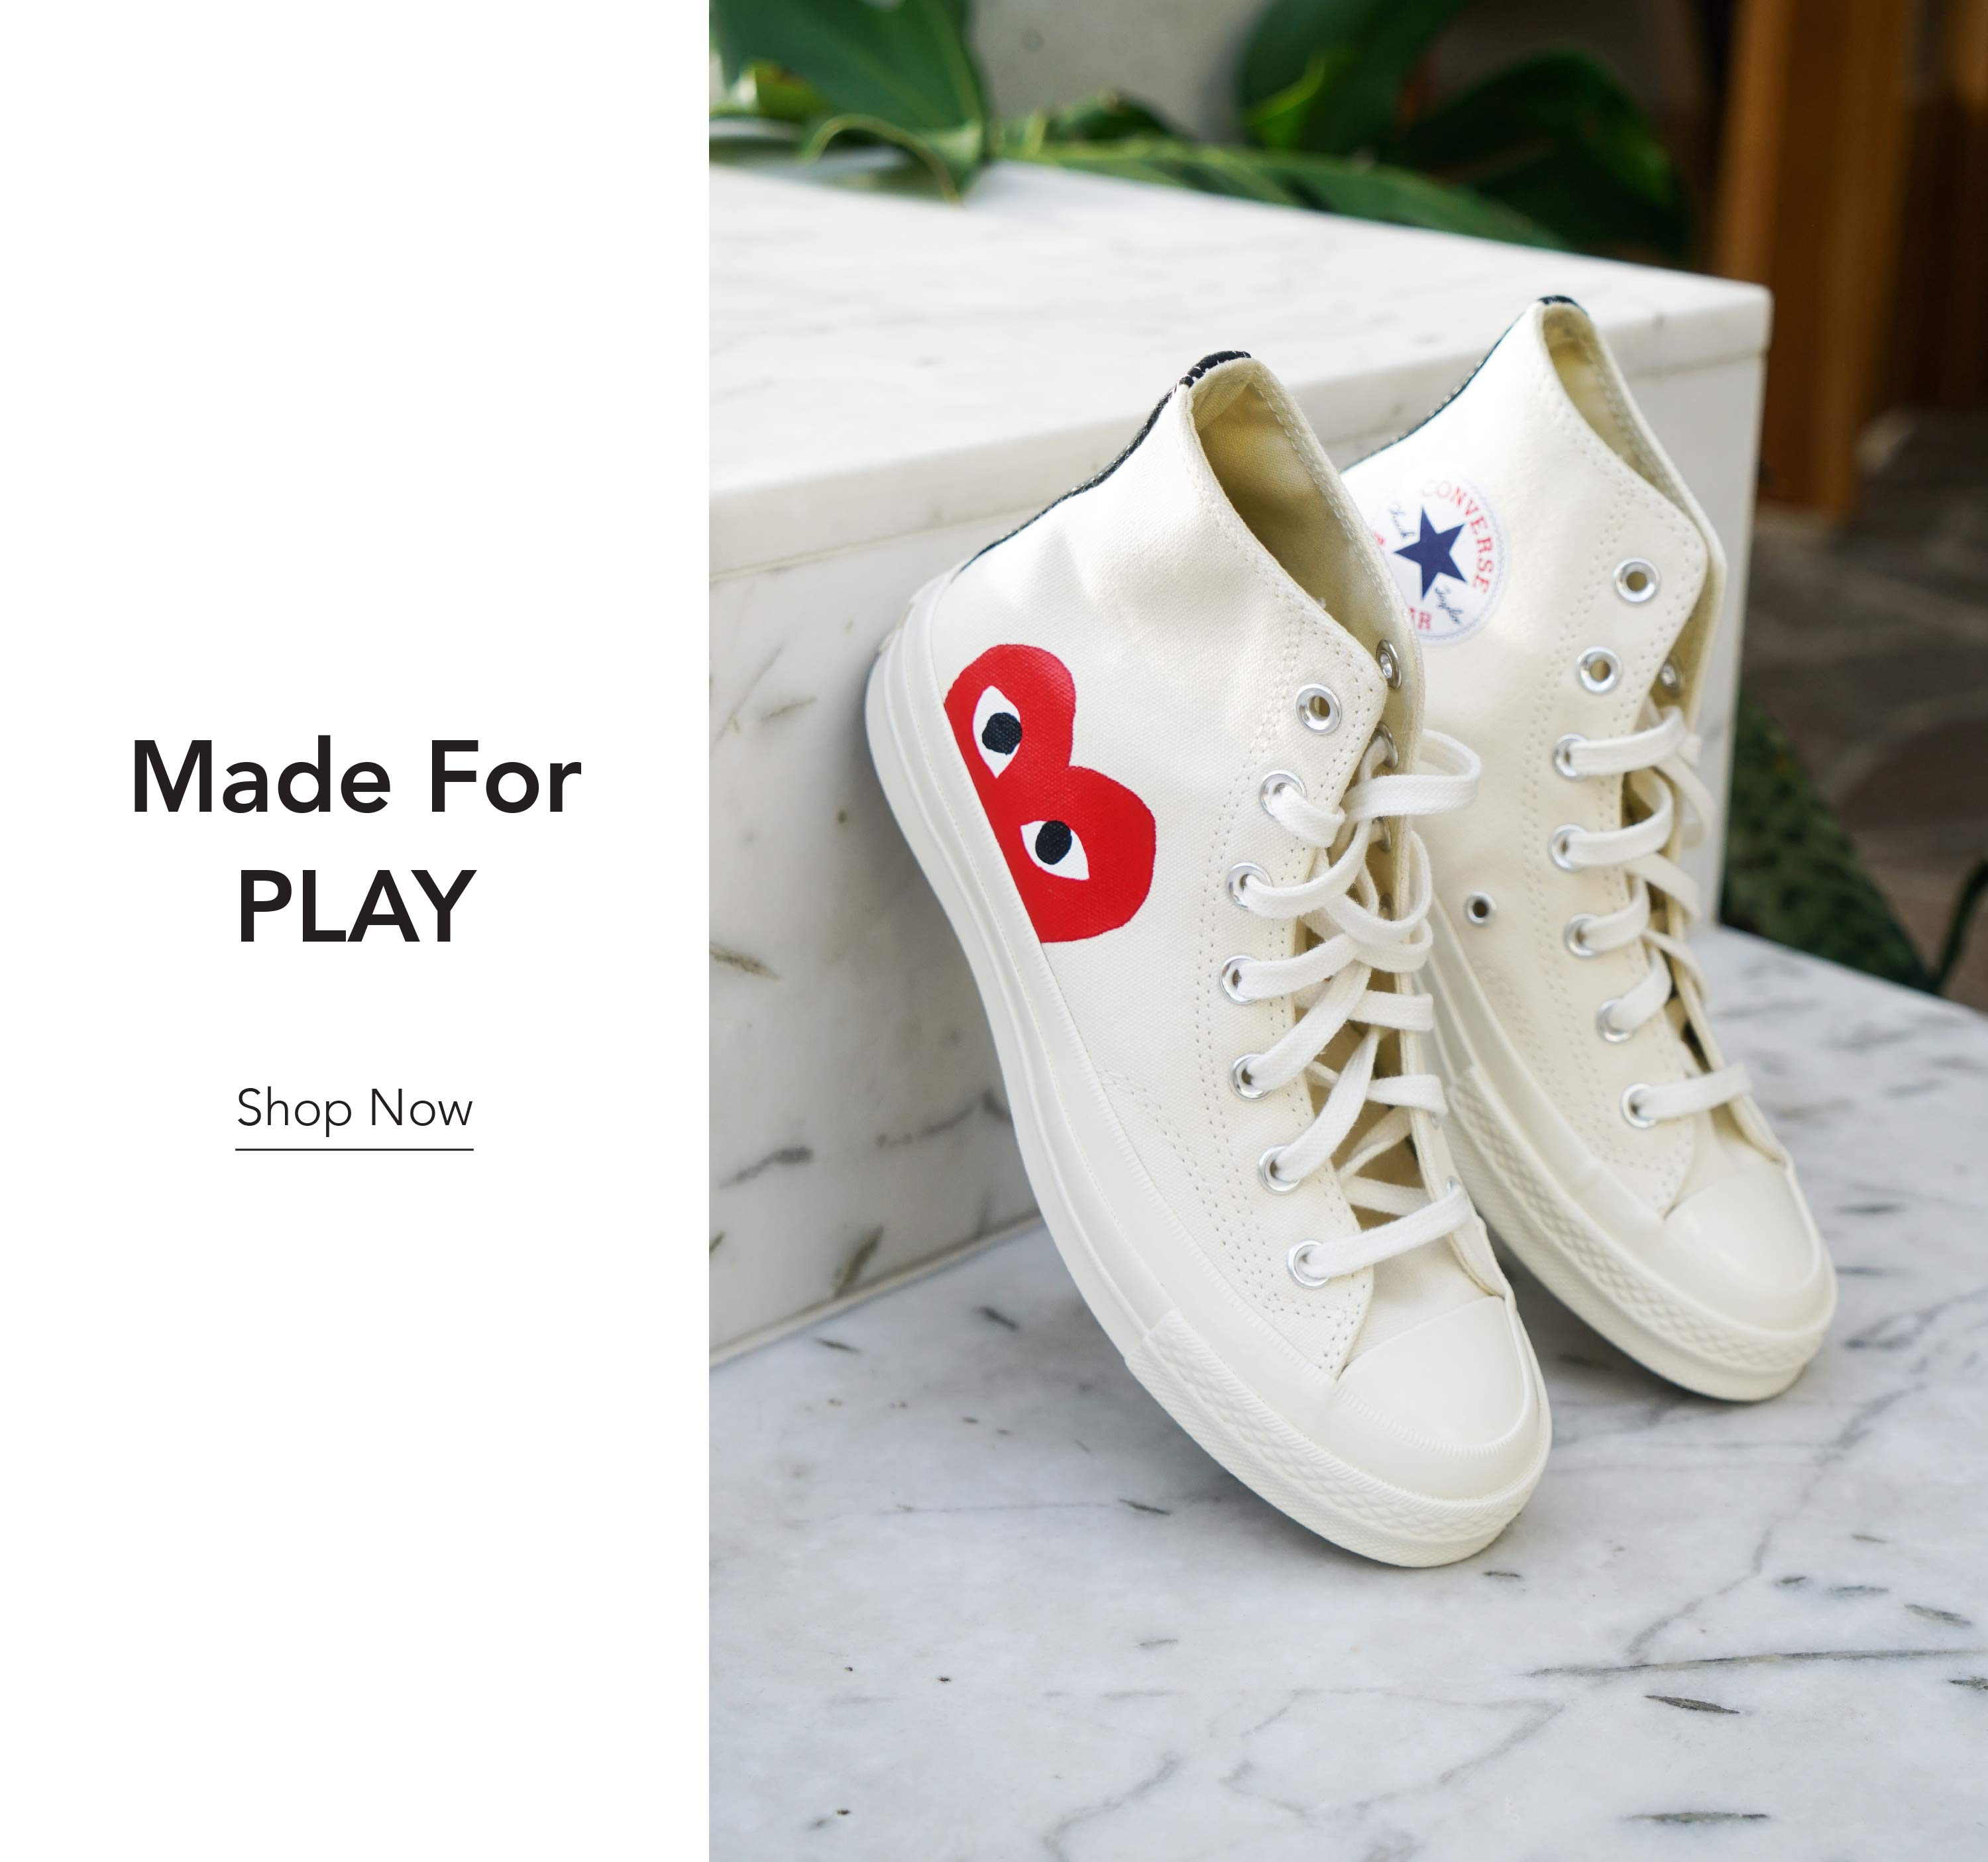 Comme PLAY Sneakers